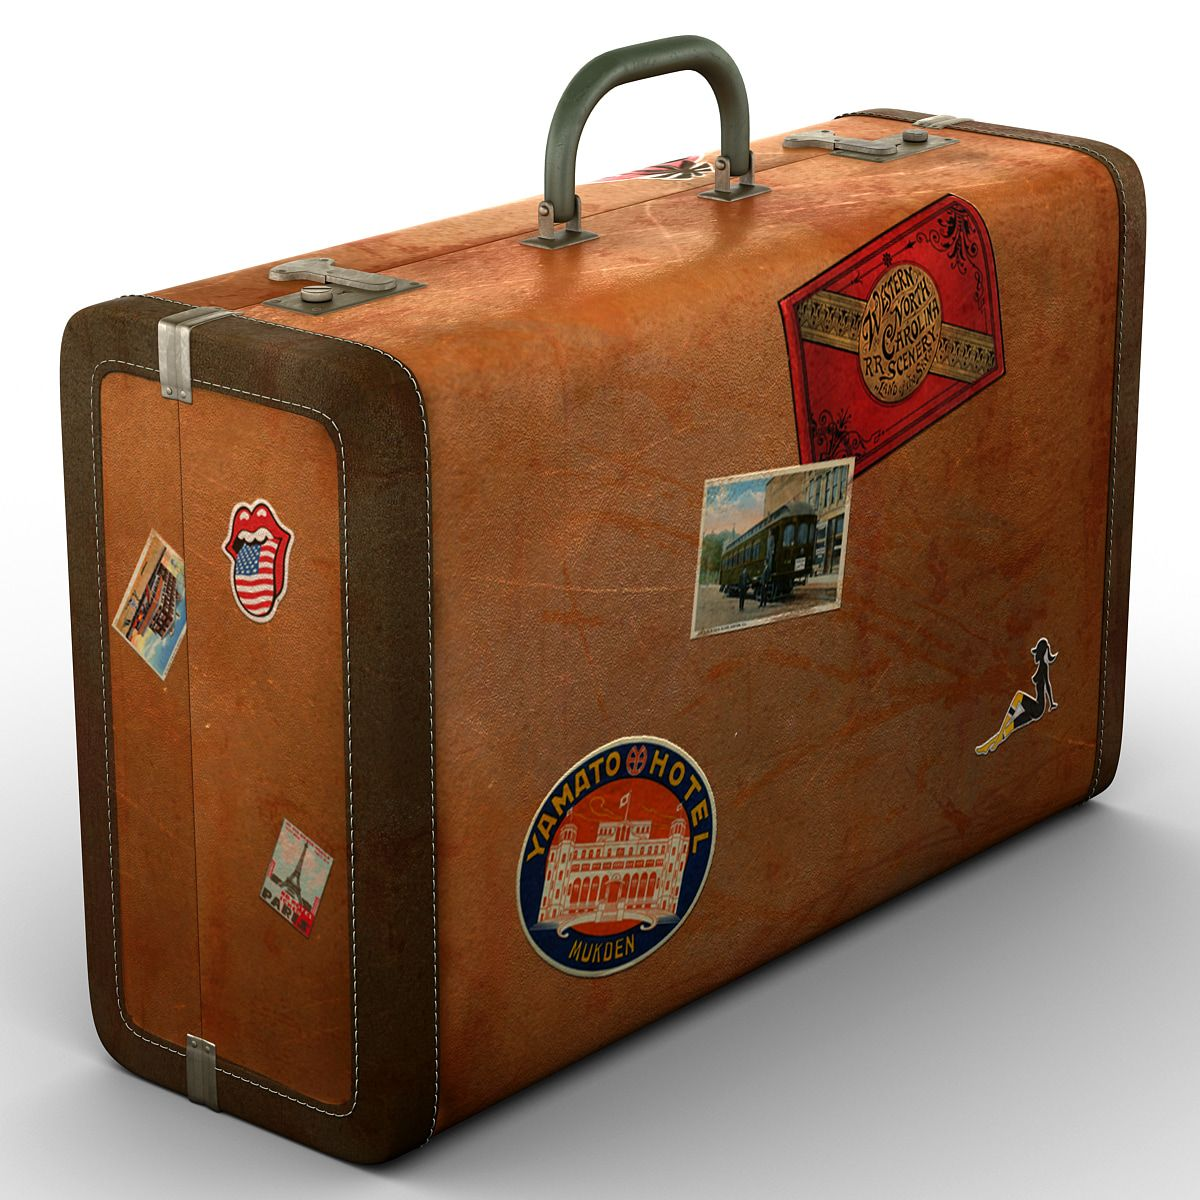 Old suitcase vintage luggage suitcase in 2019 old - Vintage suitcase ...